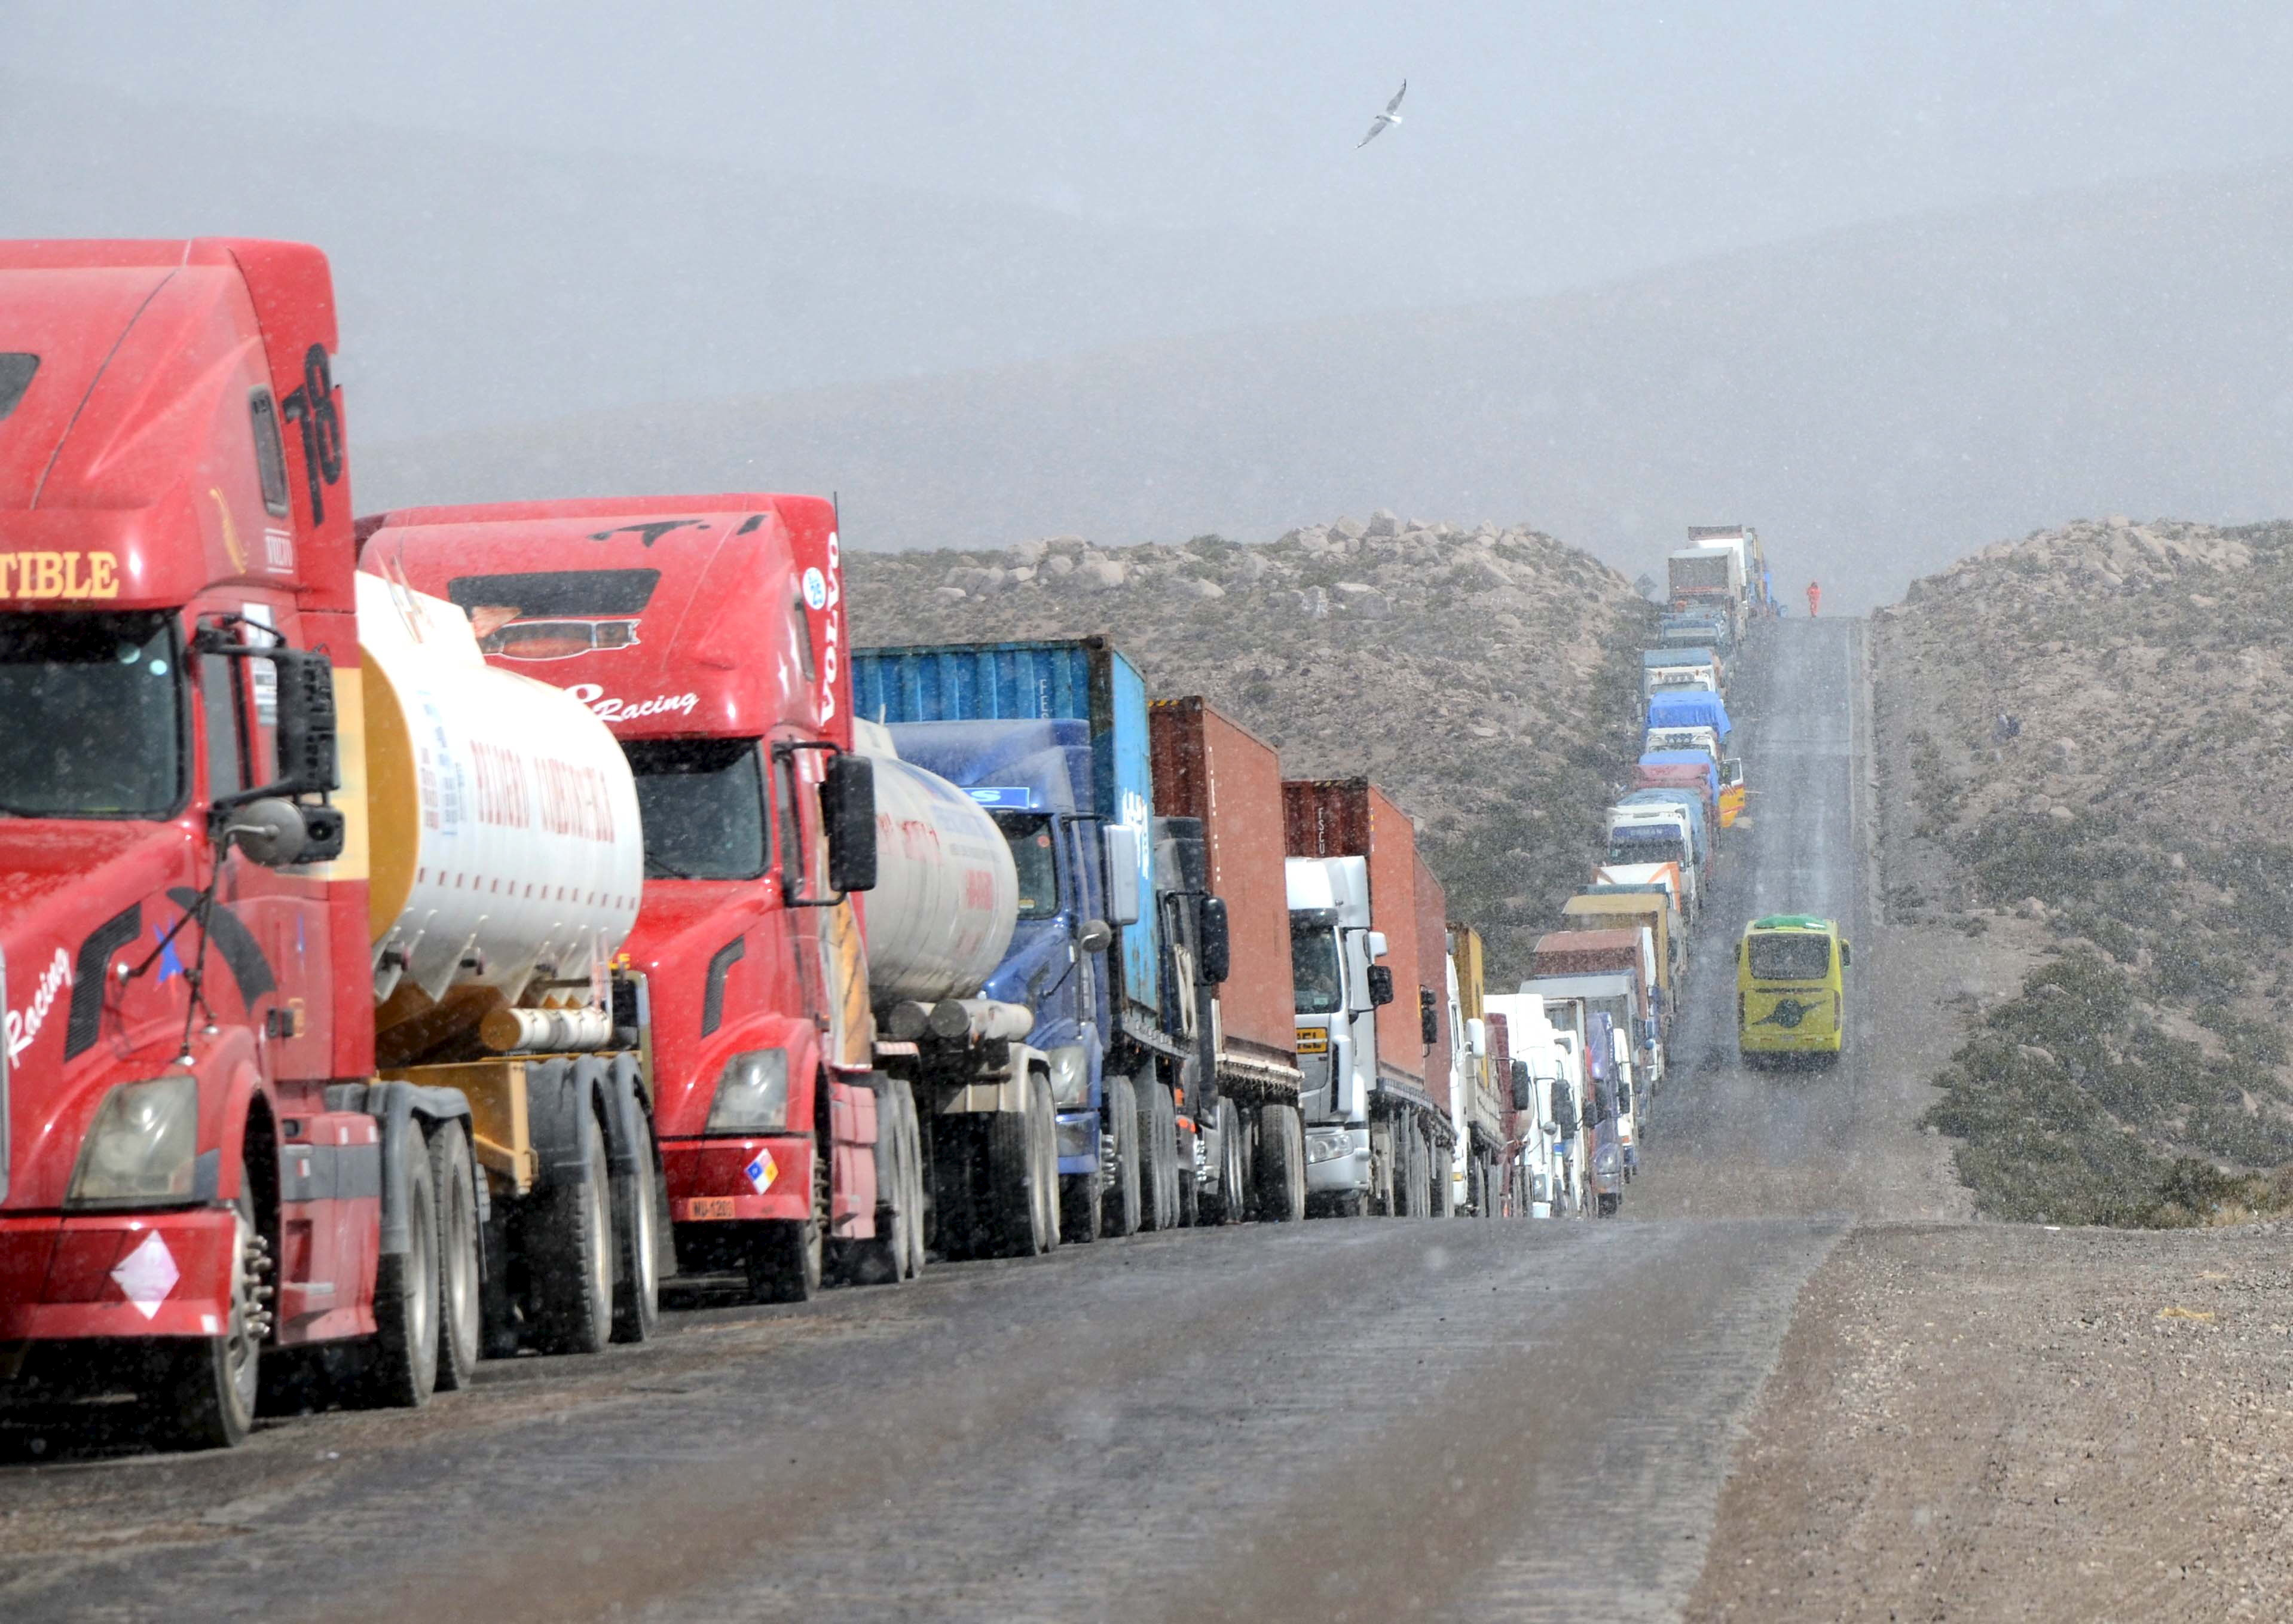 Stranded trucks are seen on the border with Chile in Tambo Quemado, as Chilean custom officials go on strike, May 26, 2015. Dozens of drivers and their relatives protested in front of the Chile's consulate in La Paz on Thursday, demanding free transit through Chile for stranded truckers at the border, after they were stranded by an ongoing strike in its seventh day by Chilean customs officials,  according to local media. Picture taken May 26, 2015. REUTERS/APG AgencyATTENTION EDITORS - THIS IMAGE WAS PROVIDED BY A THIRD PARTY. THIS PICTURE IS DISTRIBUTED EXACTLY AS RECEIVED BY REUTERS, AS A SERVICE TO CLIENTS. EDITORIAL USE ONLY. NOT FOR SALE FOR MARKETING OR ADVERTISING CAMPAIGNS.  - GF10000110536